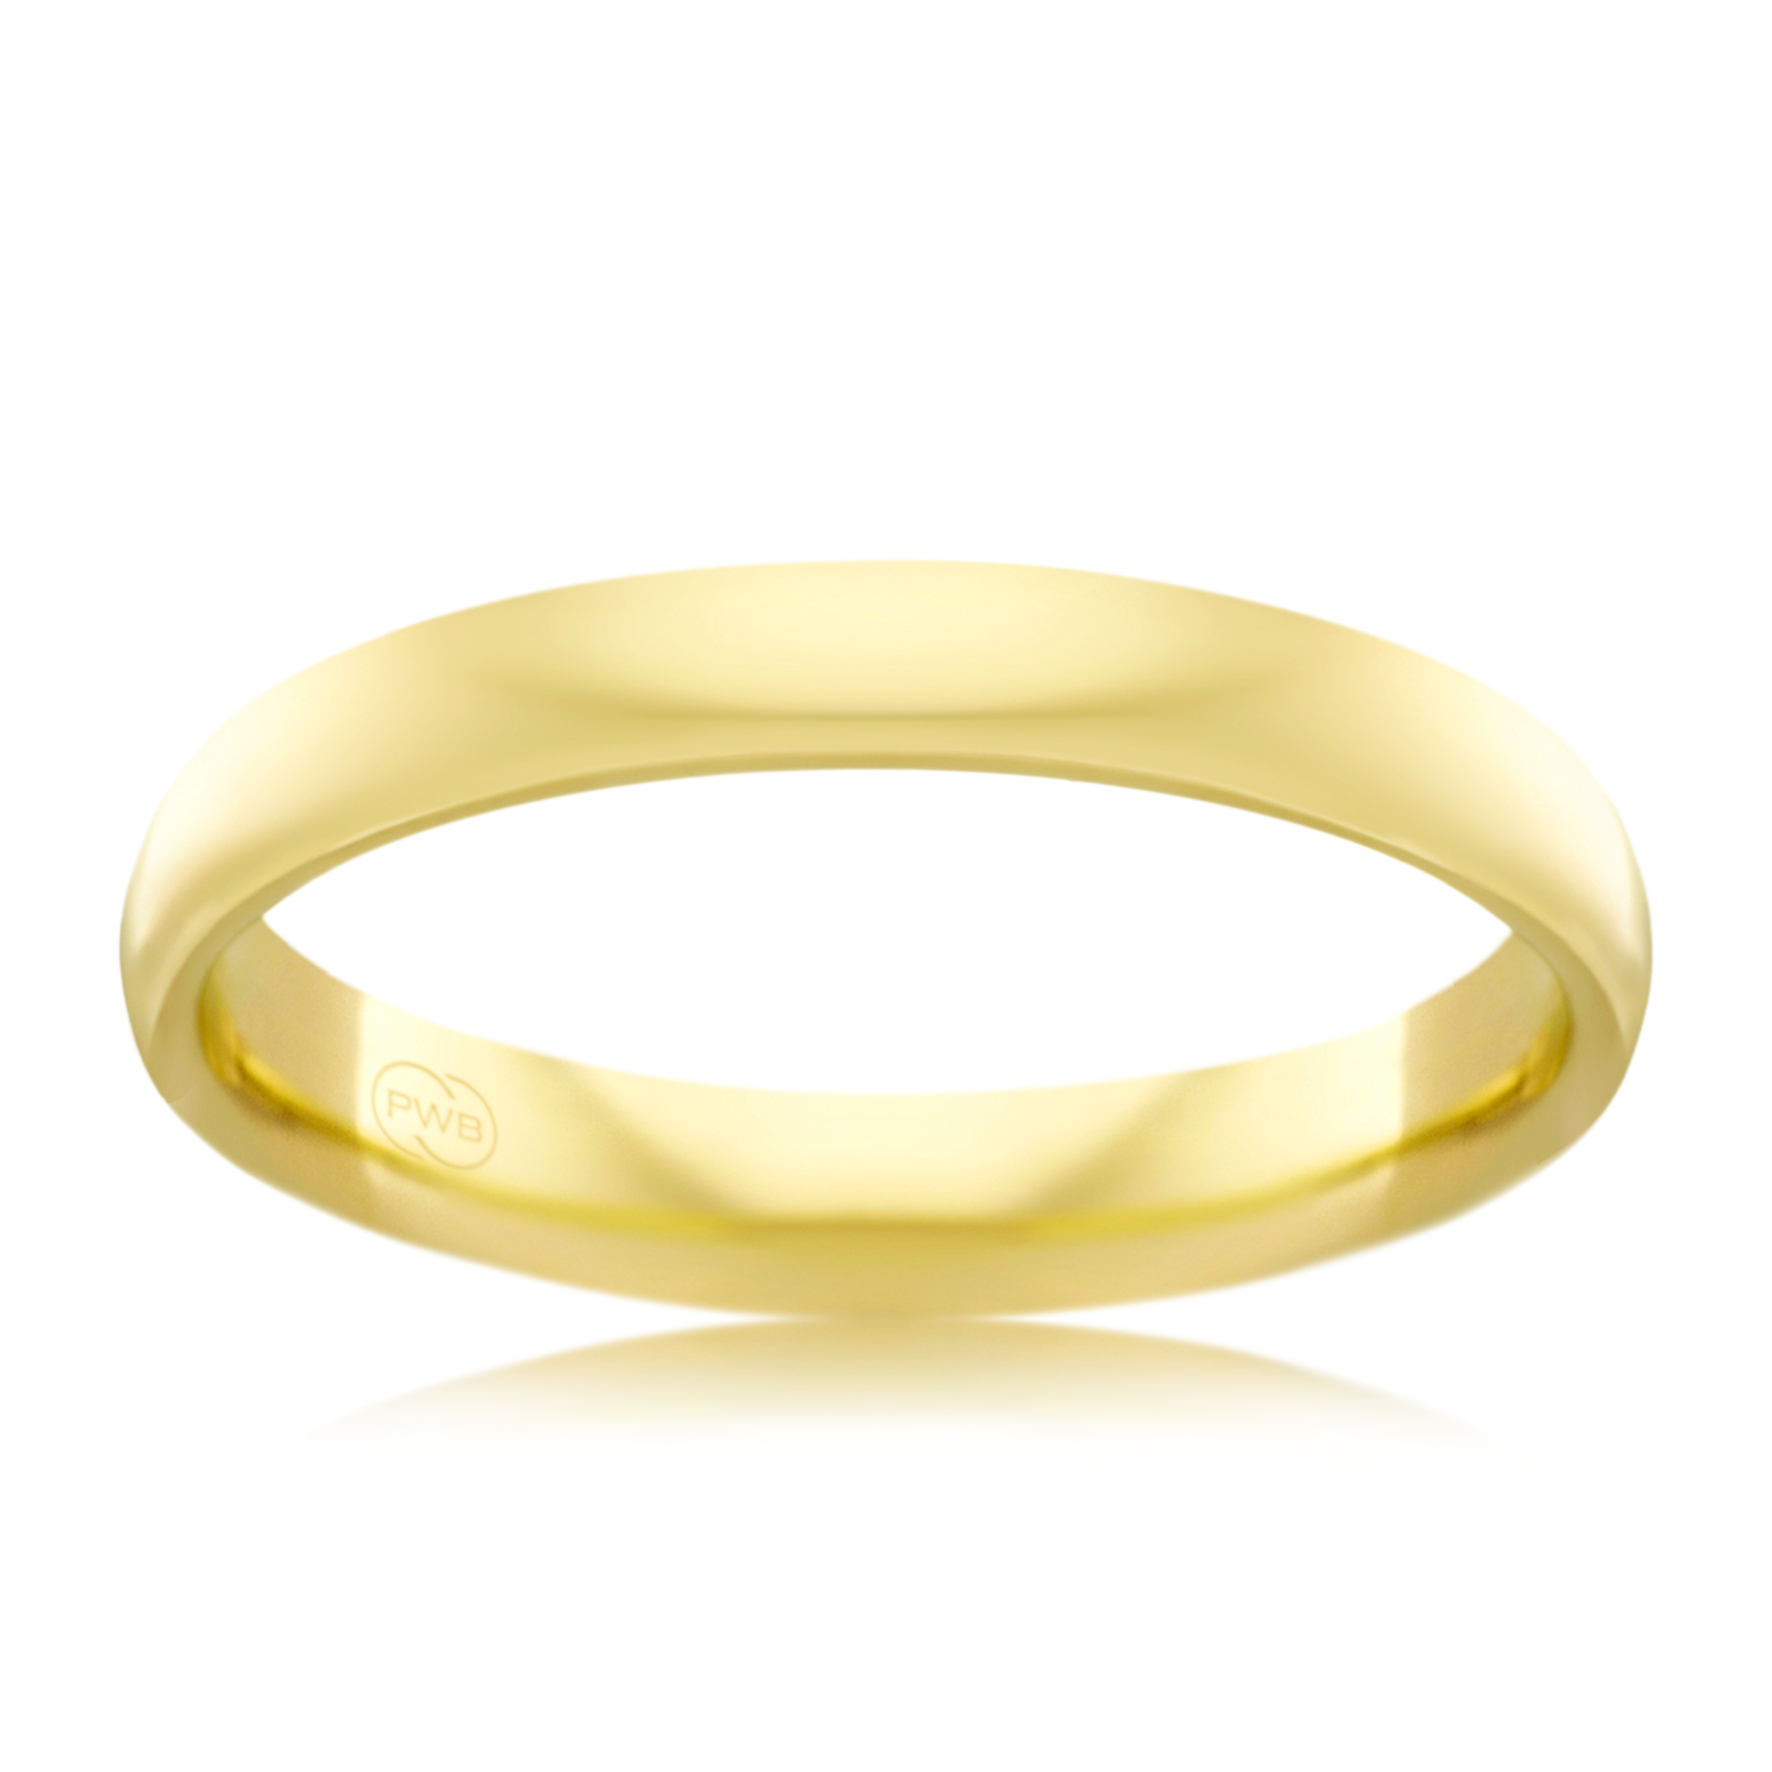 Peter W Beck Ring CW3 Y